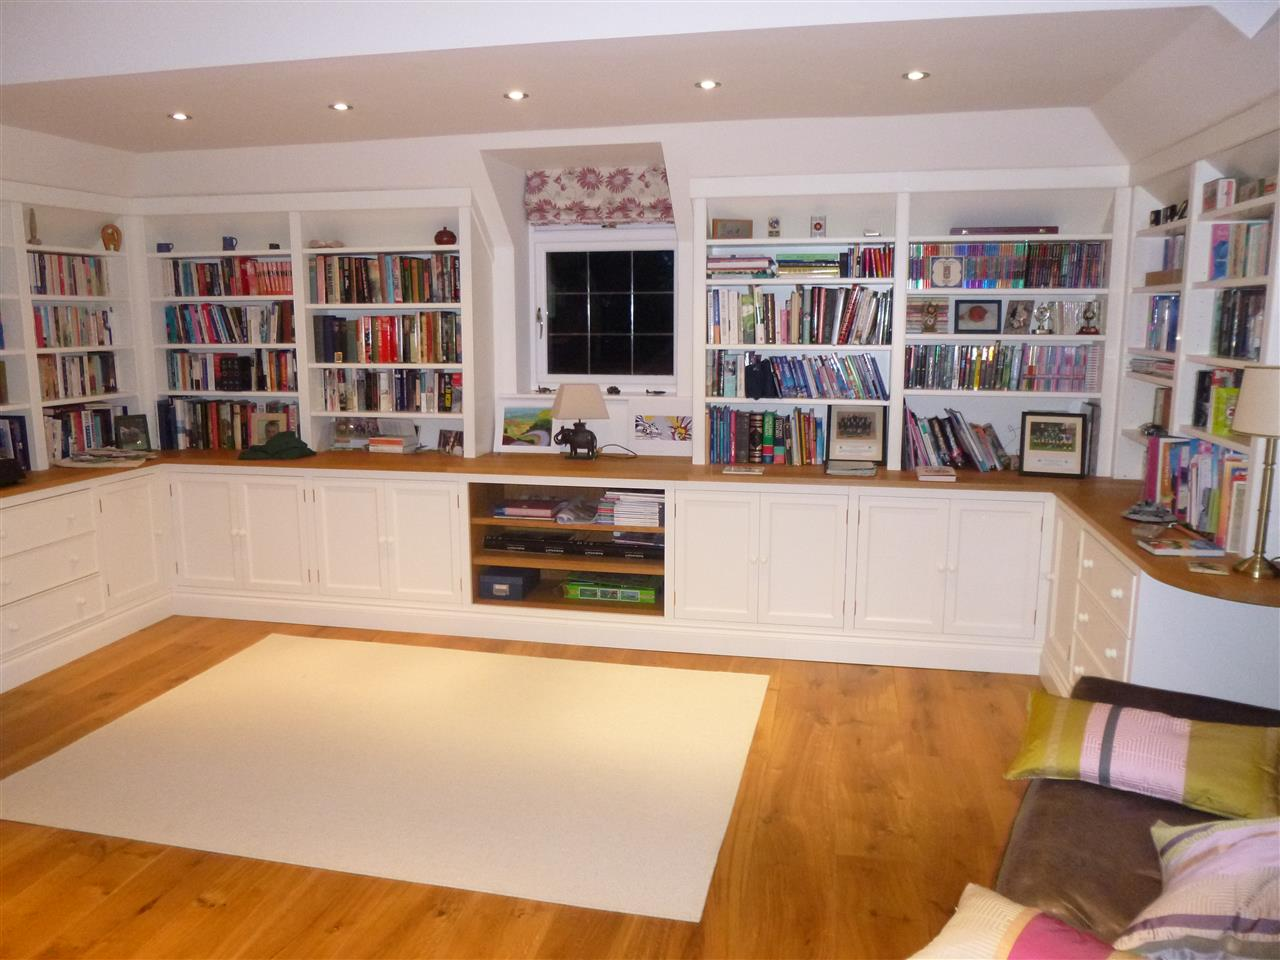 14) Loft space Library/Family Room